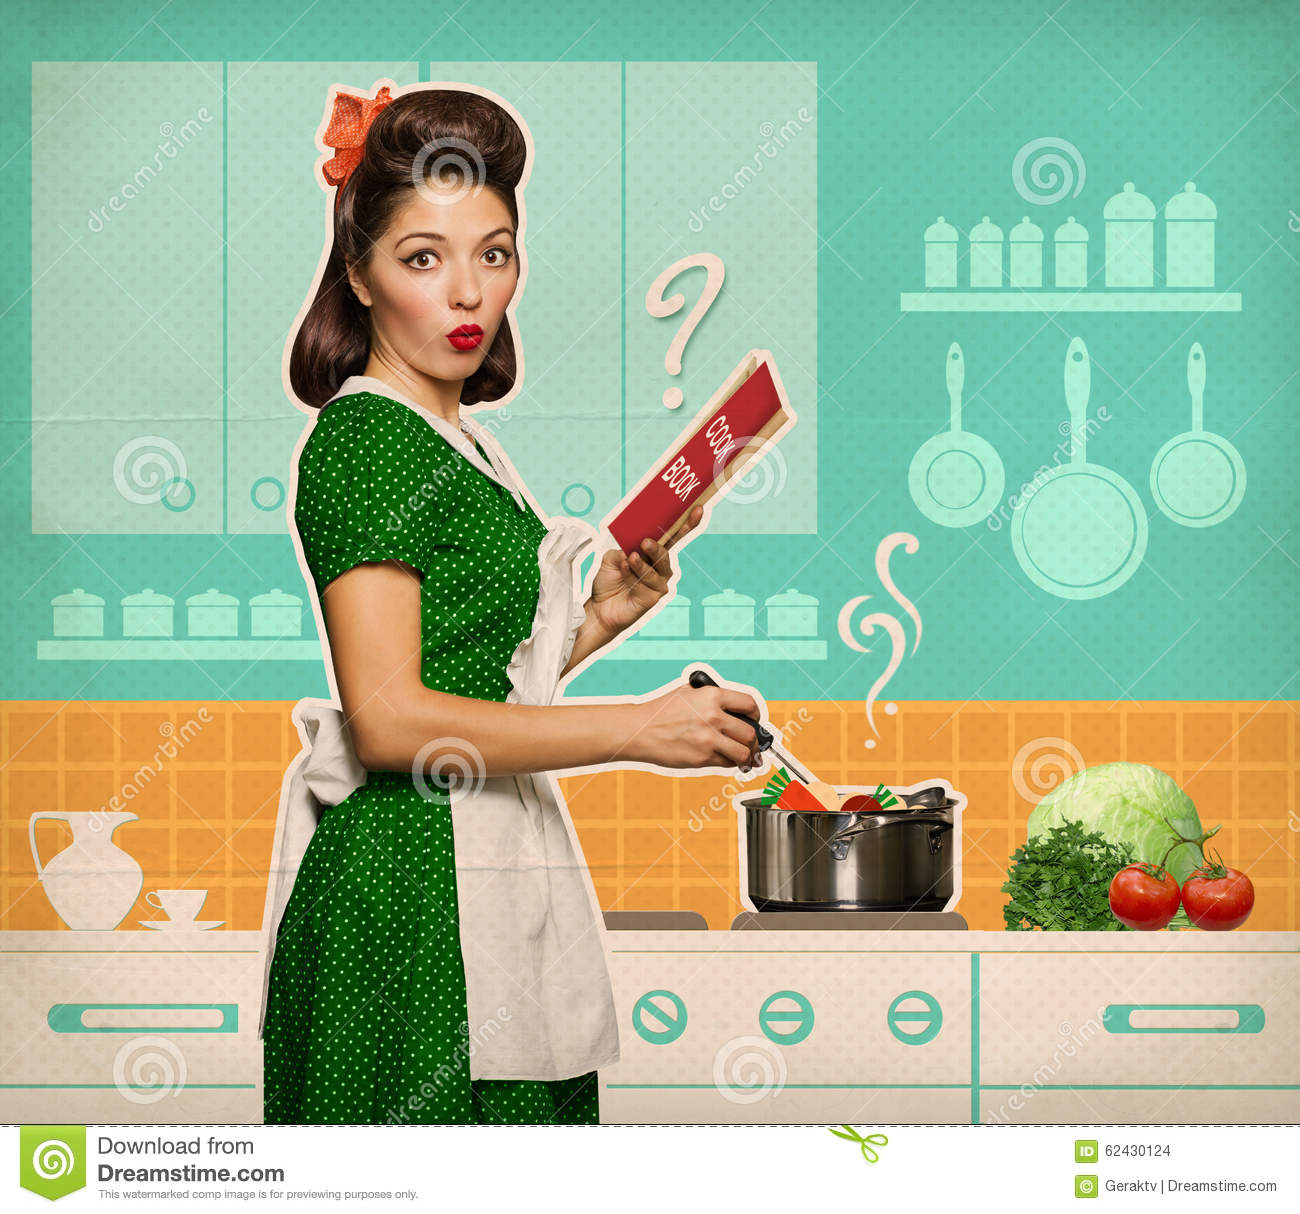 Retro Woman In Kitchen: Retro Young Woman Cooking And Reading Recipe Book In Her